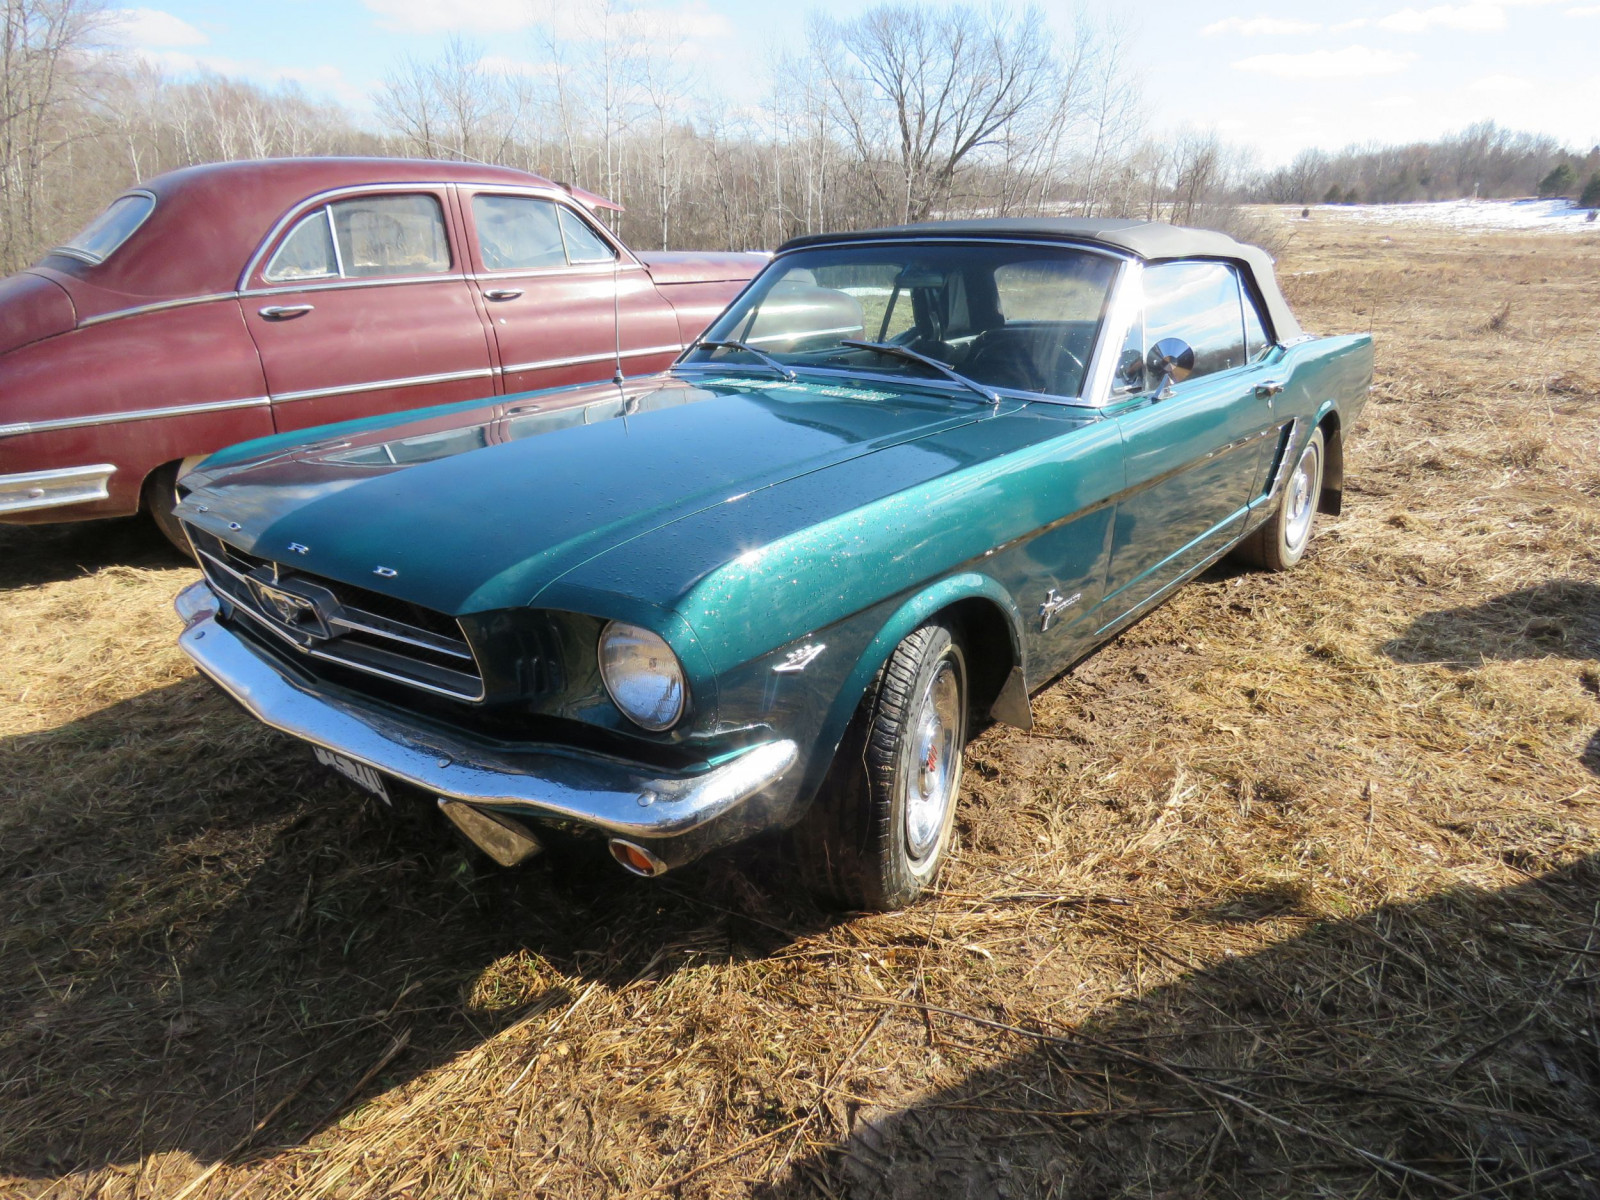 1965 Ford Mustang Convertible - Image 3